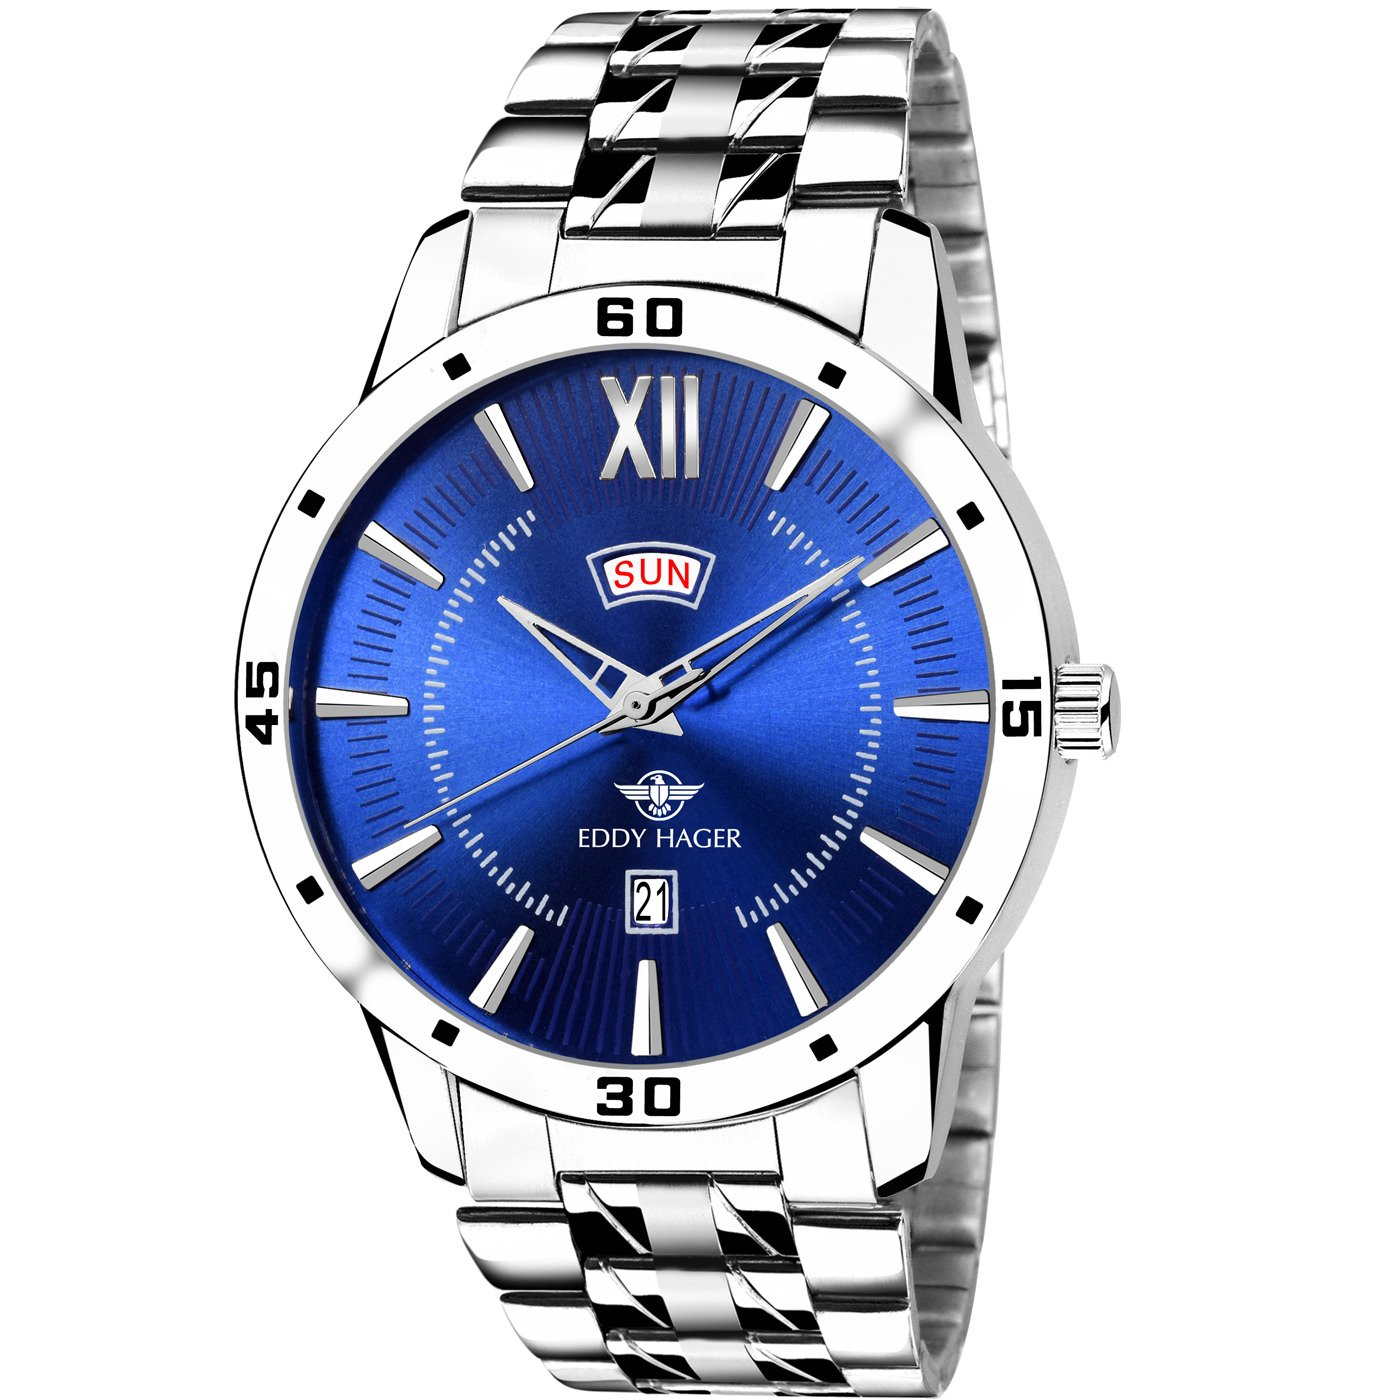 Eddy Hager Day and Date Men's Watch EH-212 product image